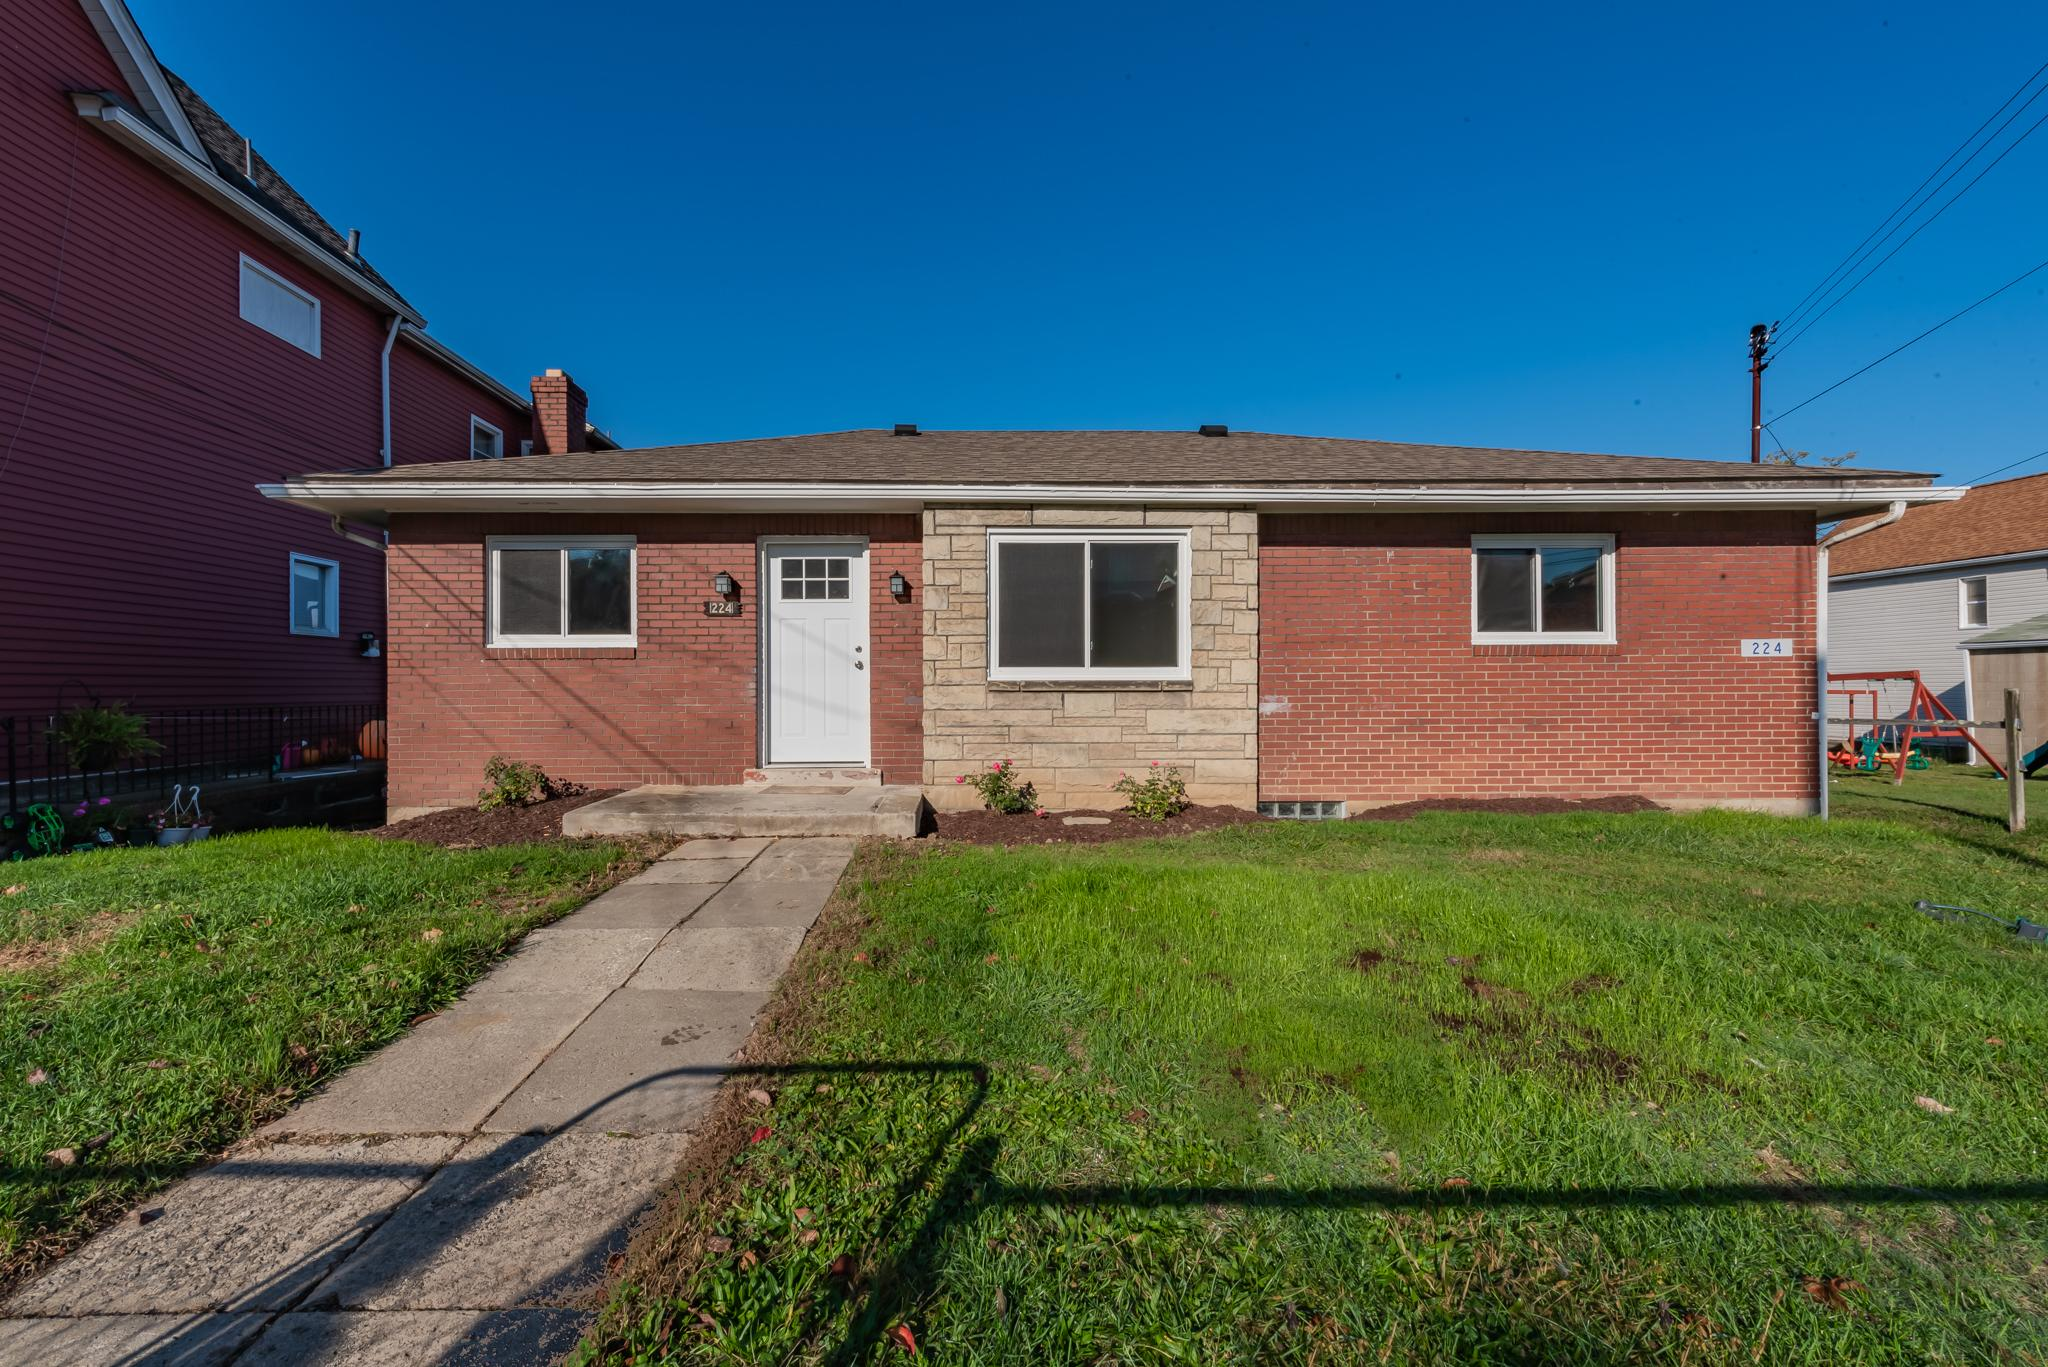 Property Image for 224 Adrian Ave